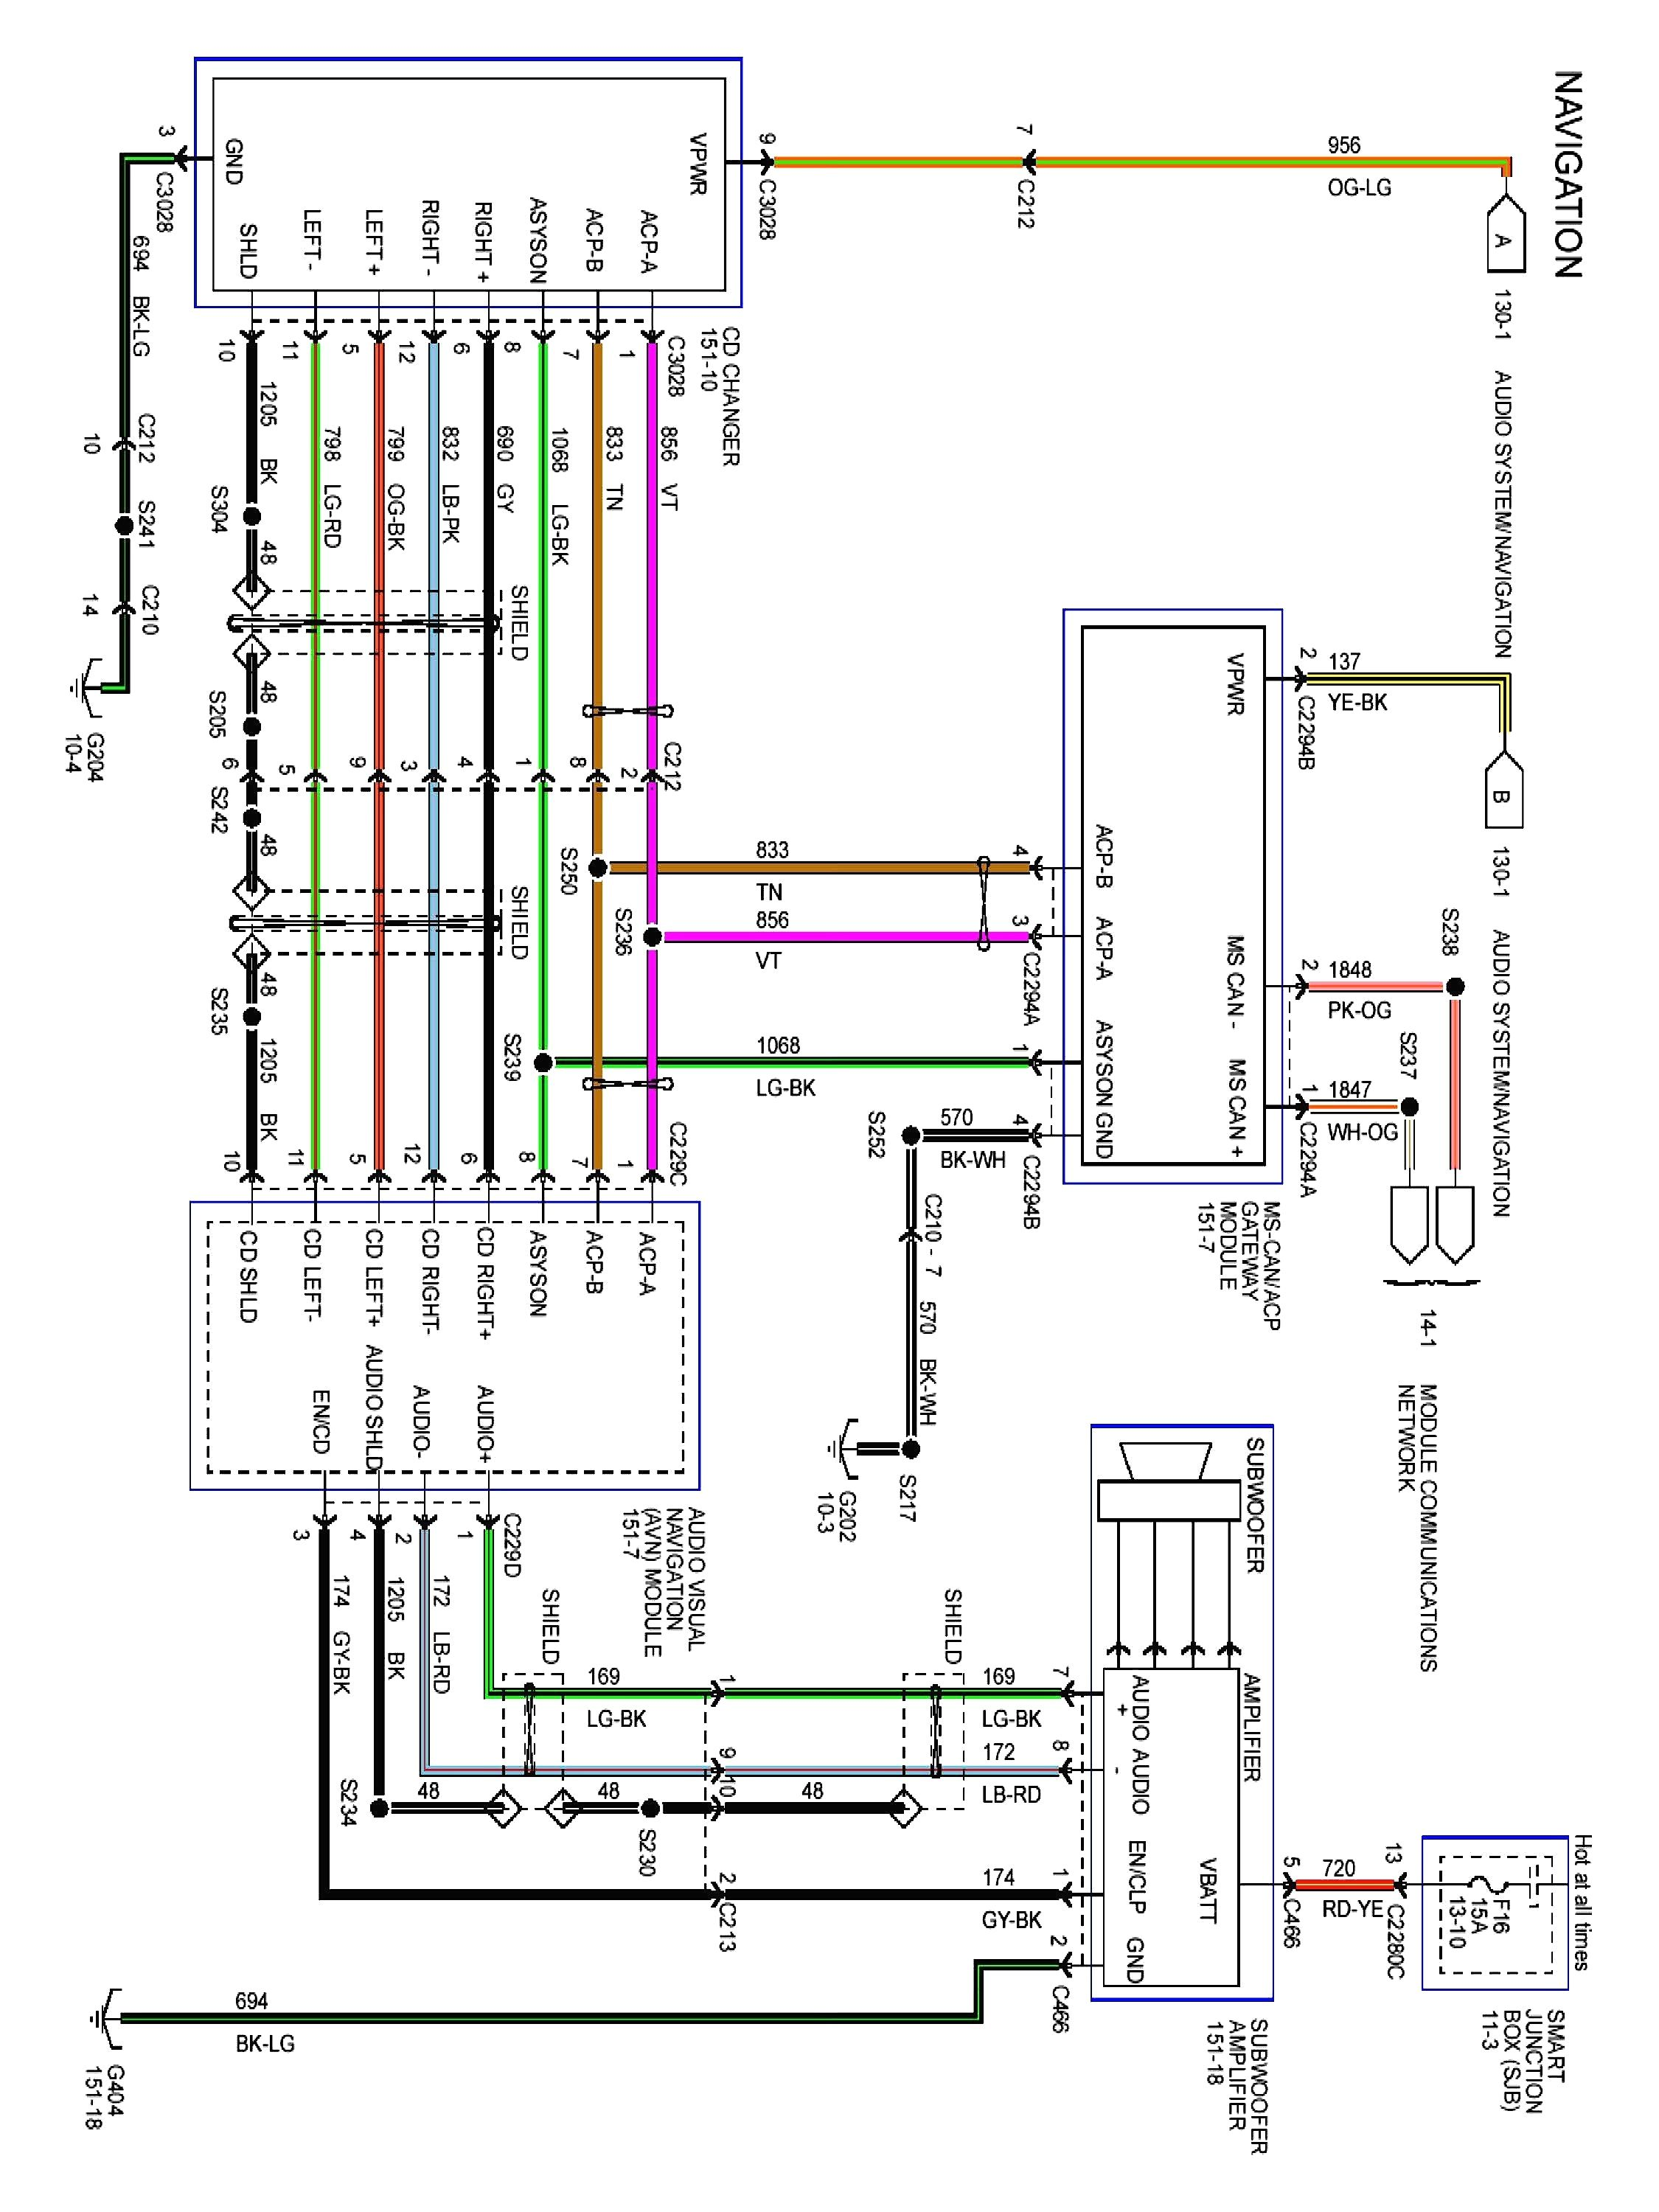 [SCHEMATICS_4CA]  LC_7048] 2003 Ford Expedition Radio Wiring Diagram 2004 Ford Expedition I  Schematic Wiring | Ford Truck Radio Wiring |  | Alma Siry Xorcede Mohammedshrine Librar Wiring 101